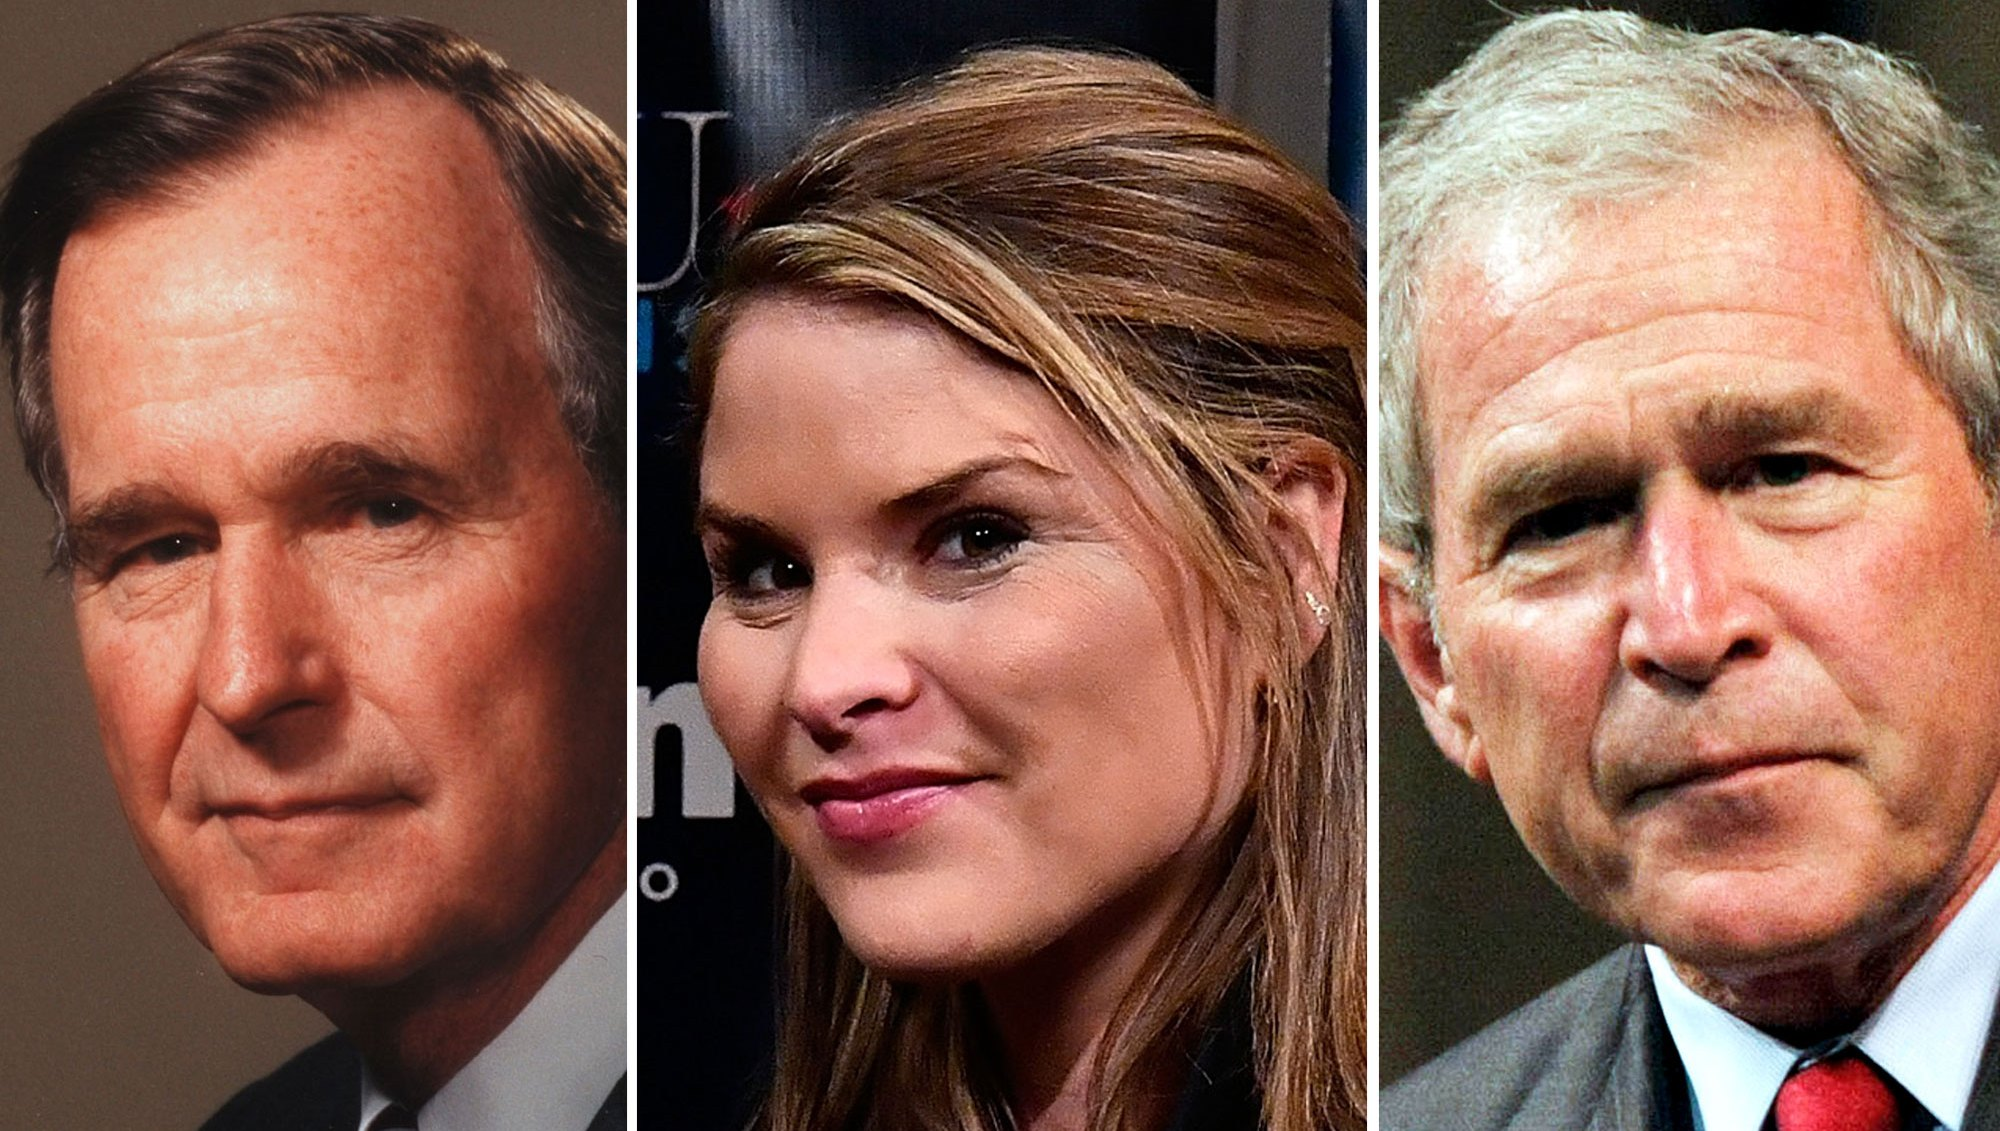 George H.W. Bush, Jenna Bush Hager, and George W. Bush